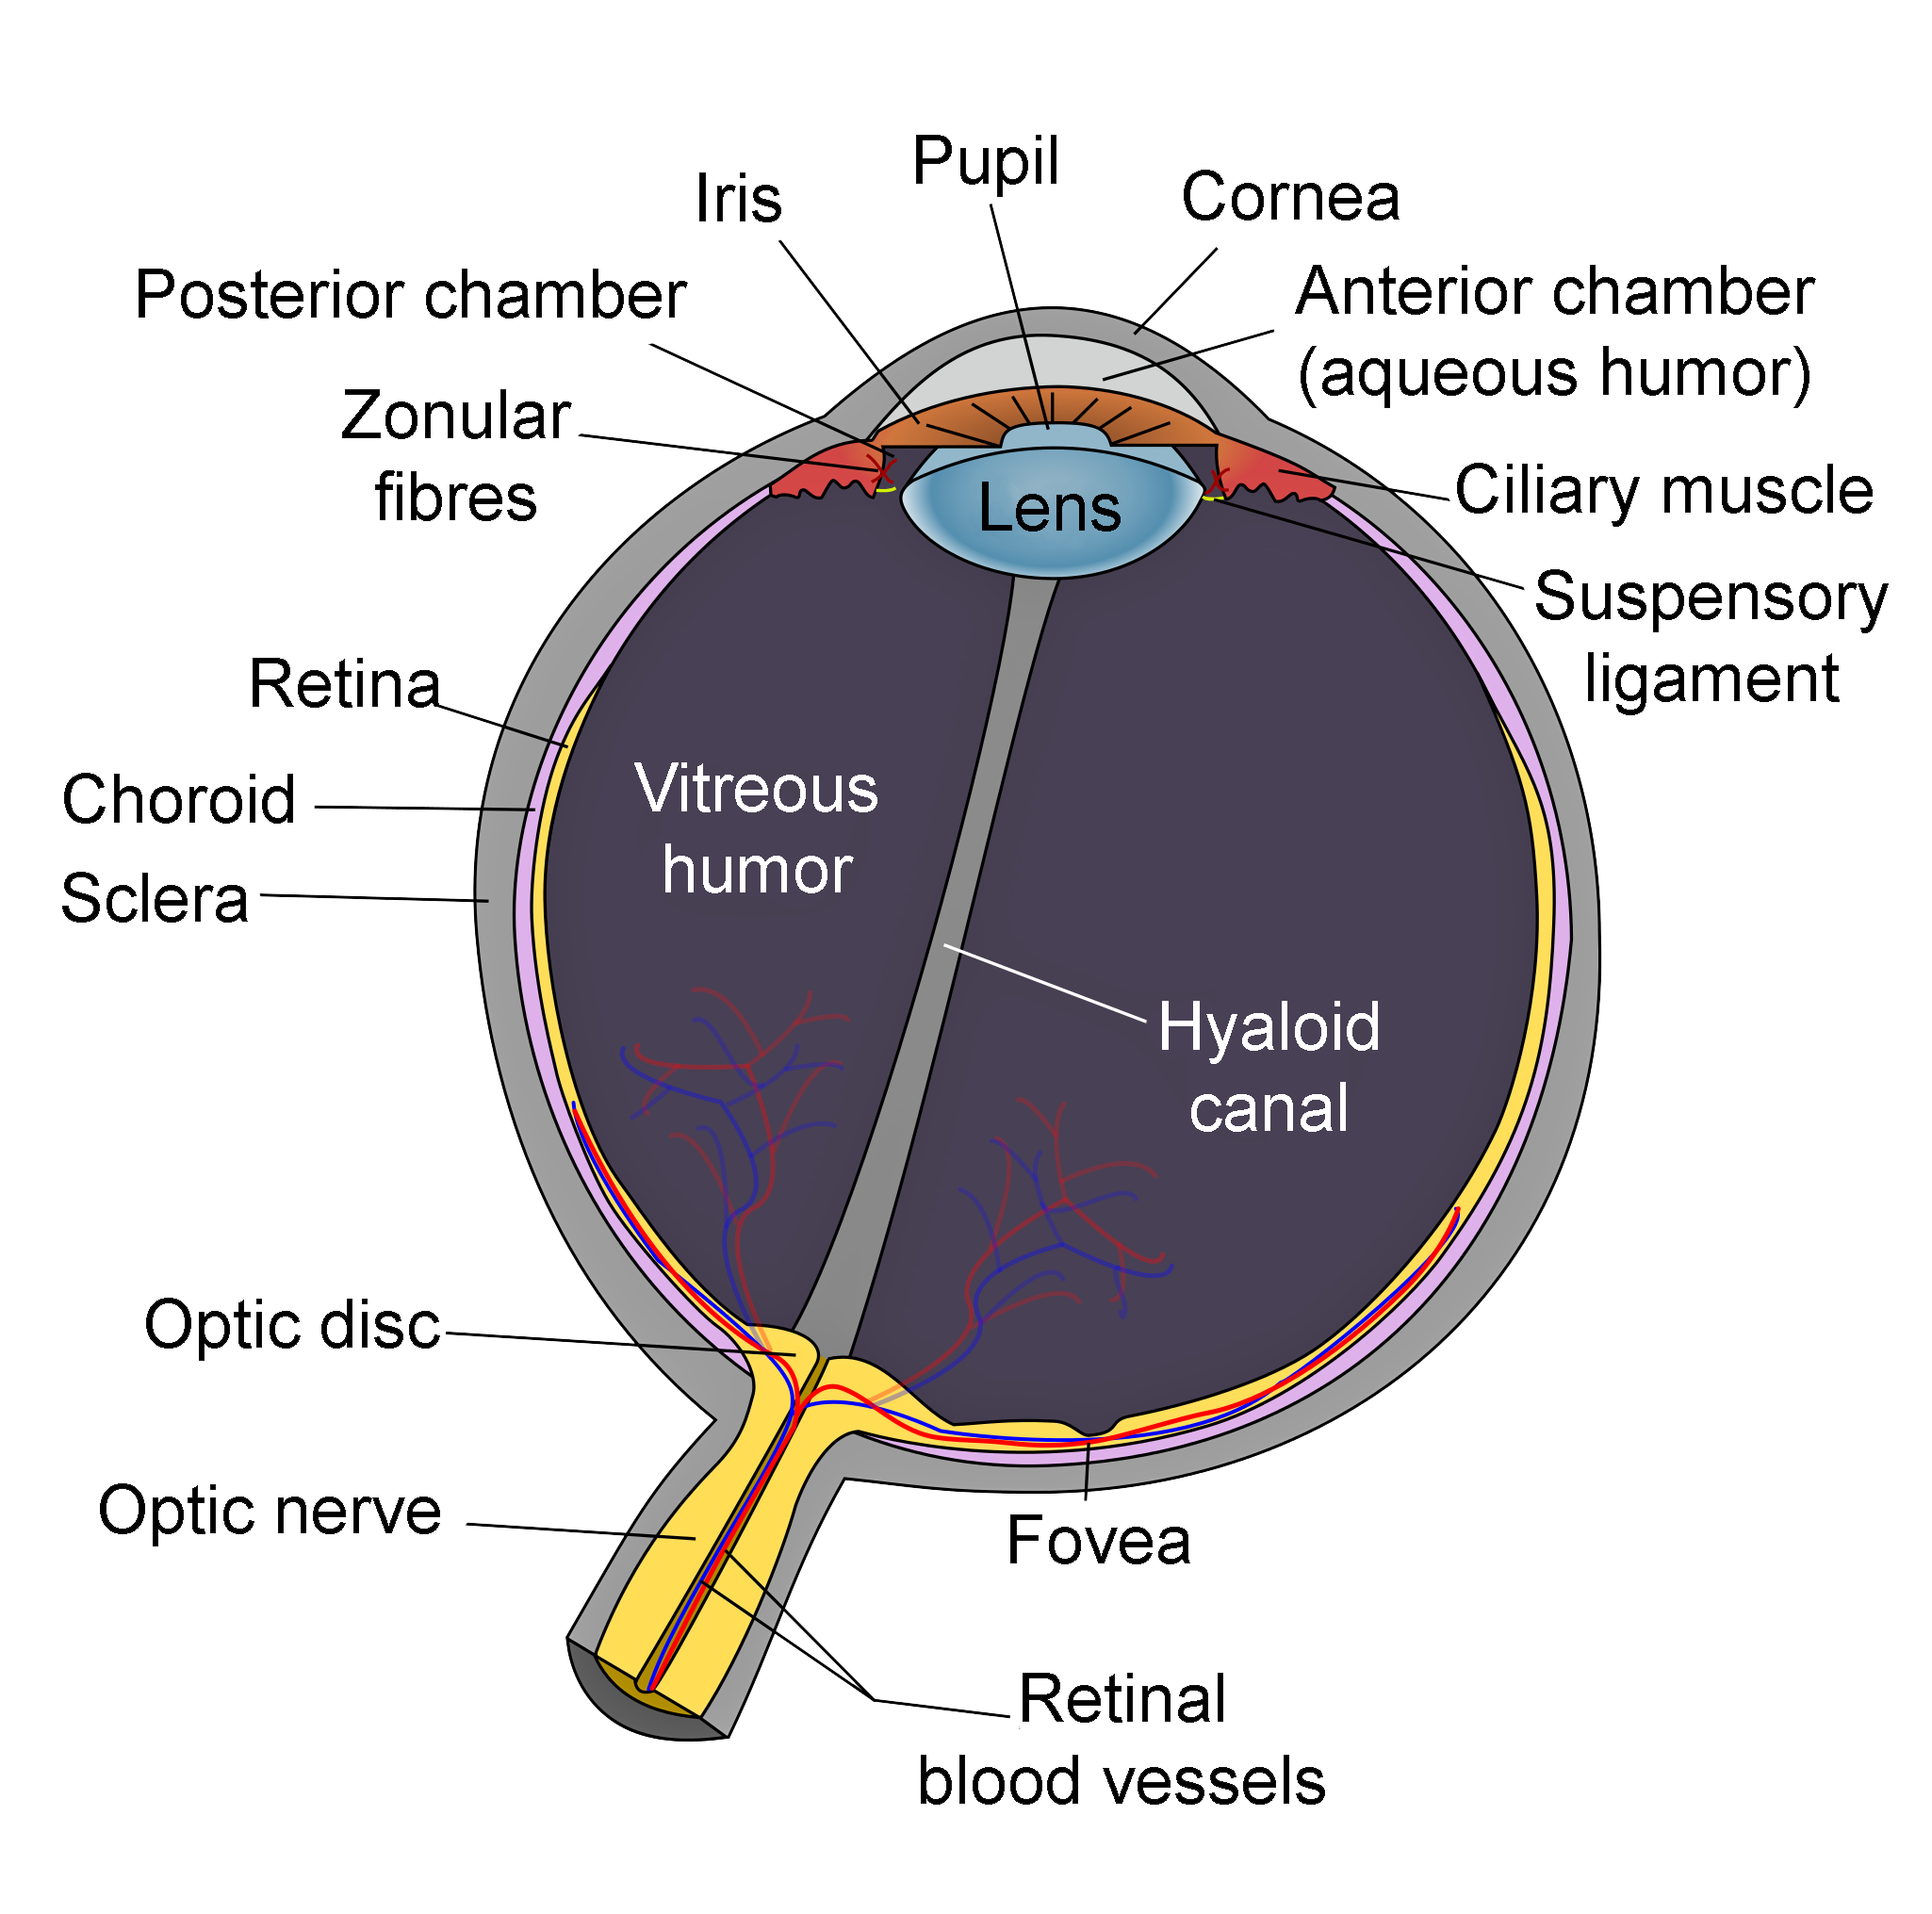 Schematic_diagram_of_the_human_eye_en-edit.png